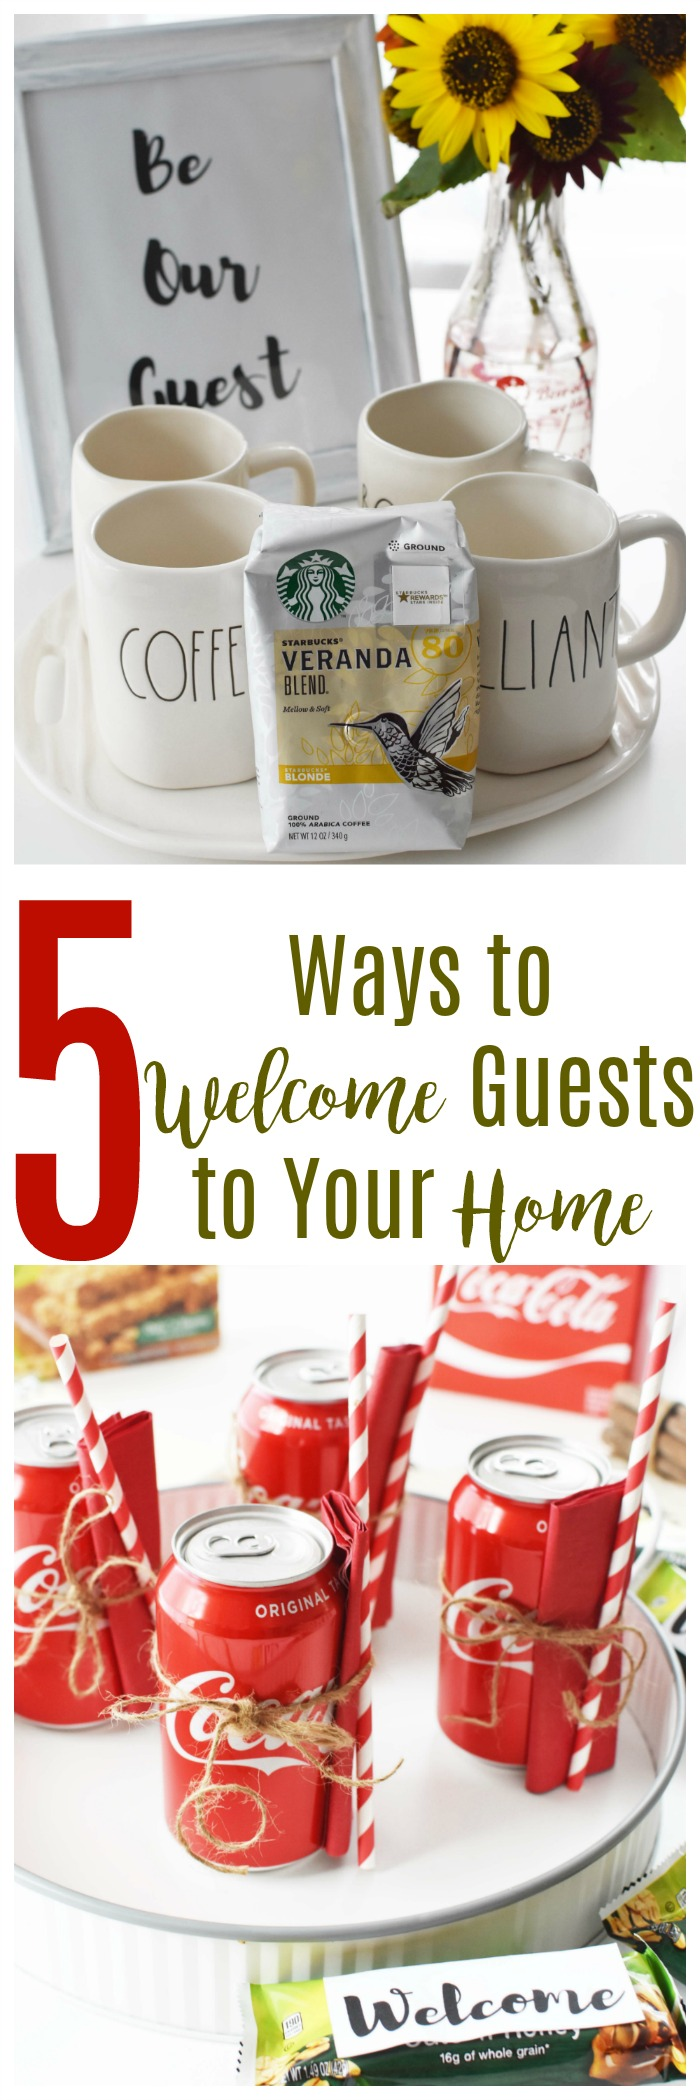 5 Ways to Welcome Guests into Your Home this Holiday Season. Looking for some simple, yet welcoming tips for hosting holiday guests? Get inspired with these easy suggestions.